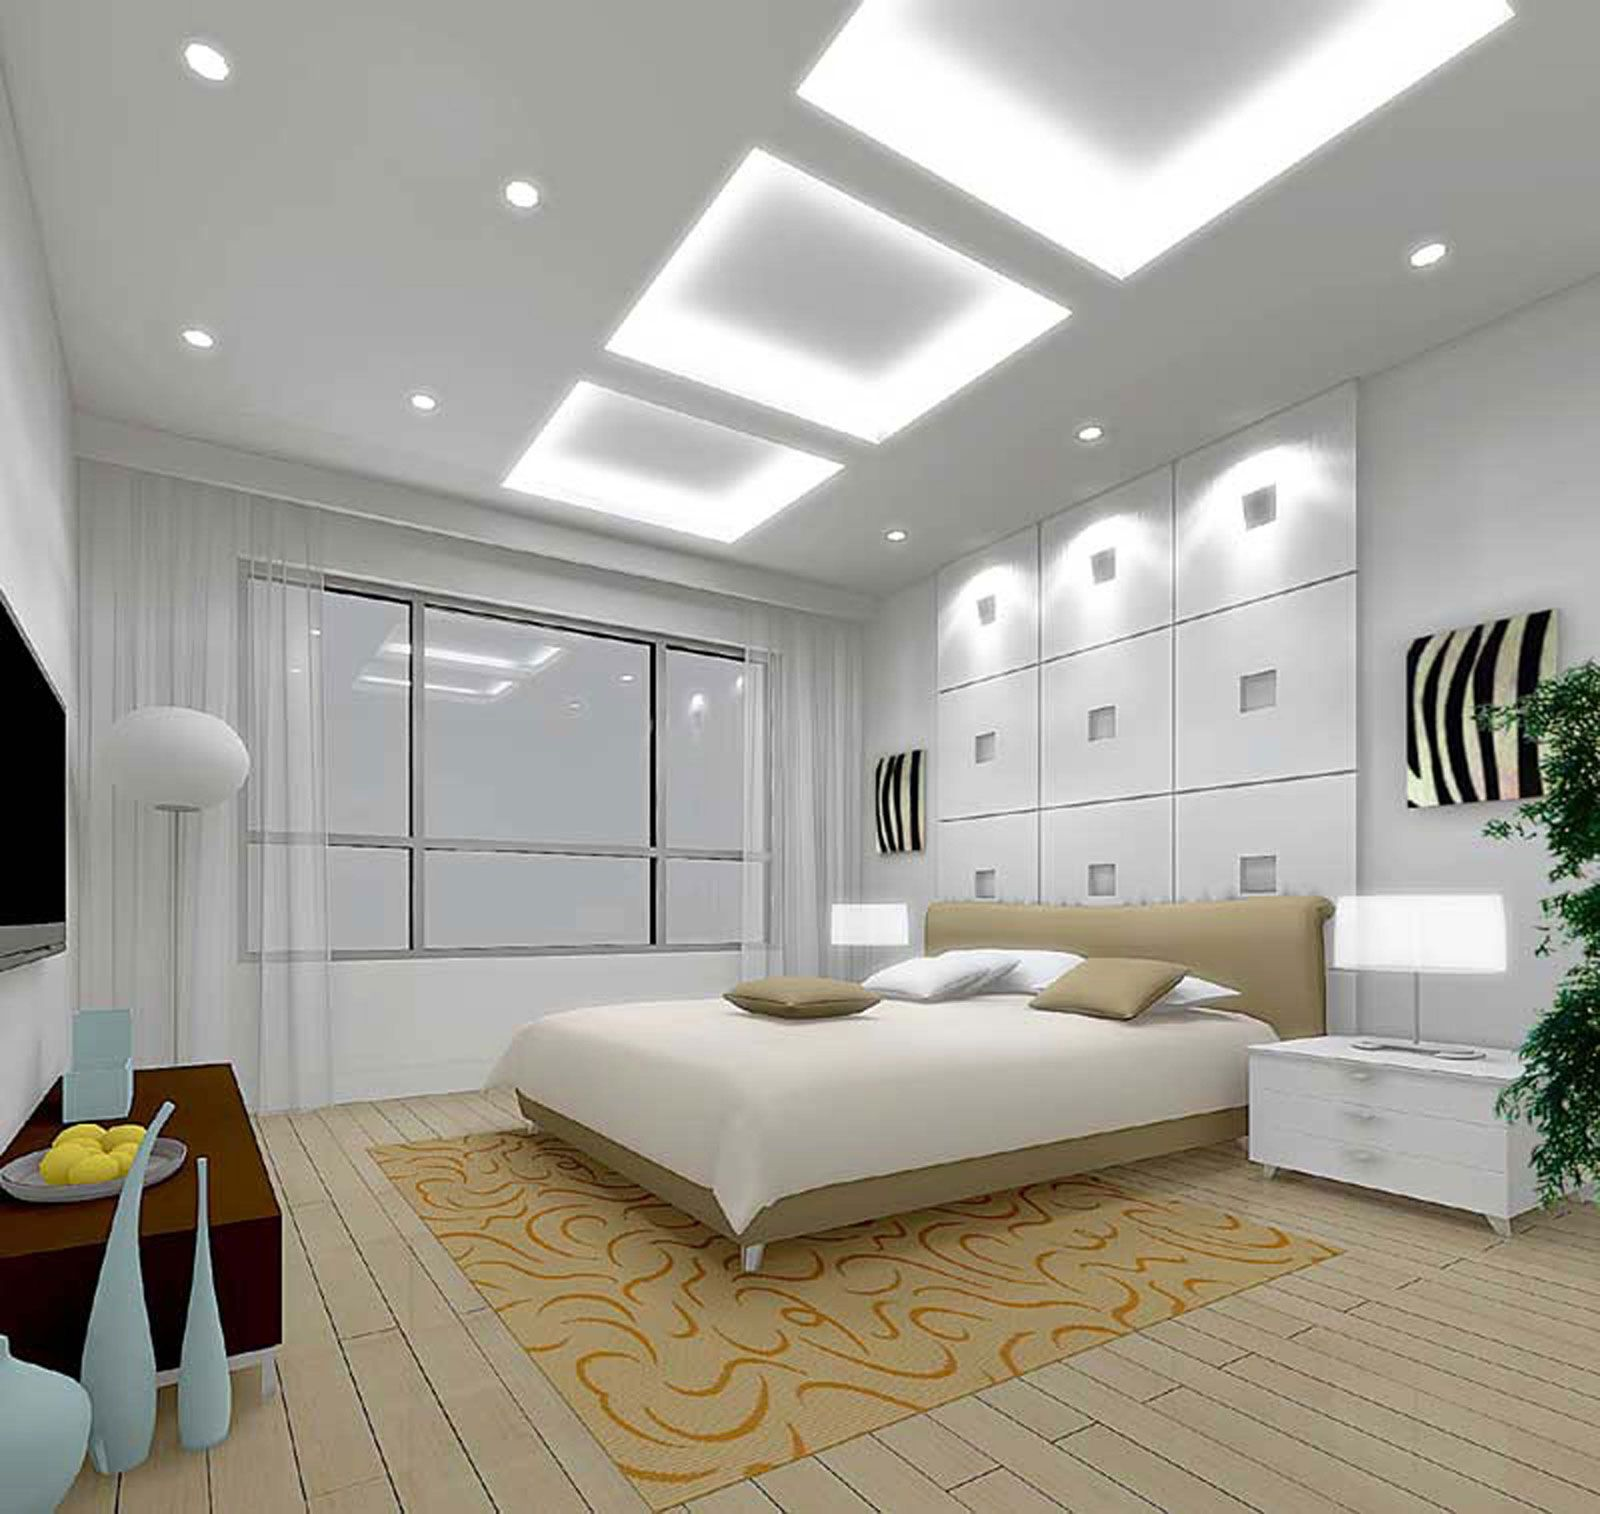 Awesome modern bedrooms - Awesome Minimalist Modern Bedroom